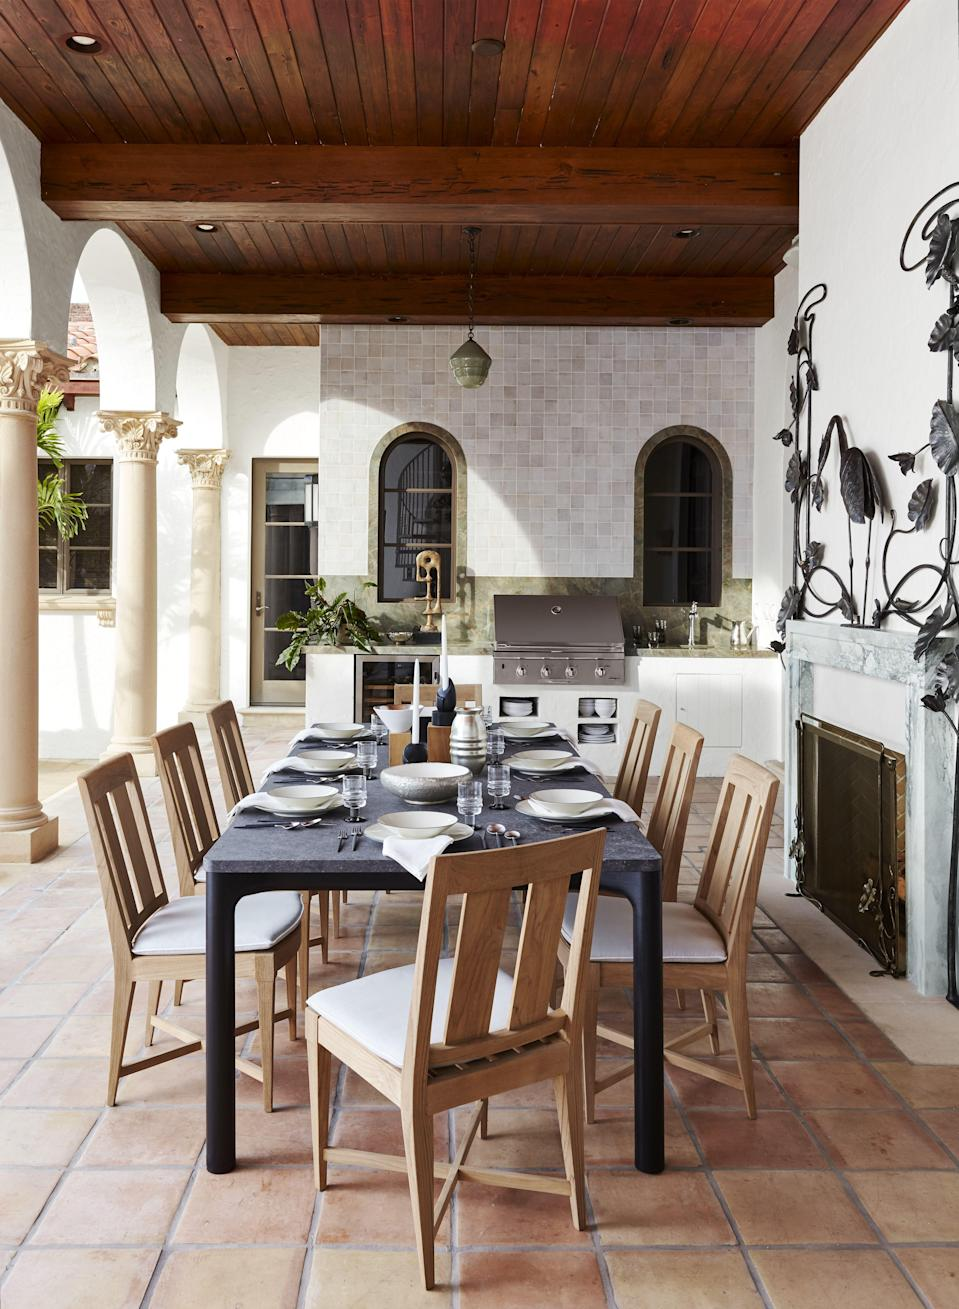 """<p>Enjoying a glass of wine on the patio after a hard day's work shouldn't just be confined to the warmer months. So much of our time is spent indoors lately, so sitting back in the fresh, <a href=""""https://www.veranda.com/outdoor-garden/a34437581/james-farmer-fall-gardening-tips/"""" rel=""""nofollow noopener"""" target=""""_blank"""" data-ylk=""""slk:cool air of your backyard garden"""" class=""""link rapid-noclick-resp"""">cool air of your backyard garden</a> is a welcome respite. As long as you have a warming patio heater.</p><p>There are two types of outdoor patio heaters: electric and propane. Electric heaters need an outlet and use infrared technology that mimics the the sun. These produce the same kind of wavelengths emitted by our own bodies and even wood fires. They are low maintenance; all you have to do is plug them in and leave them alone, and, most of the time, they are portable enough to follow you around the patio. </p><p>Propane heaters typically emit more heat, but do come with more maintenance. Stand-alone propane heaters like the classic mushroom stand may be cheaper and portable, but they require a propane tank. Wall mount versions will need to be plumbed into your main gas line. They also require frequent cleaning, especially at the end of the winter months, to remove carbon buildup and debris.</p><p>The first step in finding the right heater is to decide how much time you want to wait and how much money you want to invest. Sometimes picking up the local option at the hardware store will be the best kind of instant gratification, and they can easily be replaced next season. (In many places around the country, the demand for heaters has surpassed the supply this year.) Often times the cheaper versions are made in the same factory as more expensive ones, so the quality change is not drastic. Whether you are looking for a more long-term patio investment or a quick fix, we've gathered some of the most highly rated on the market. </p>"""